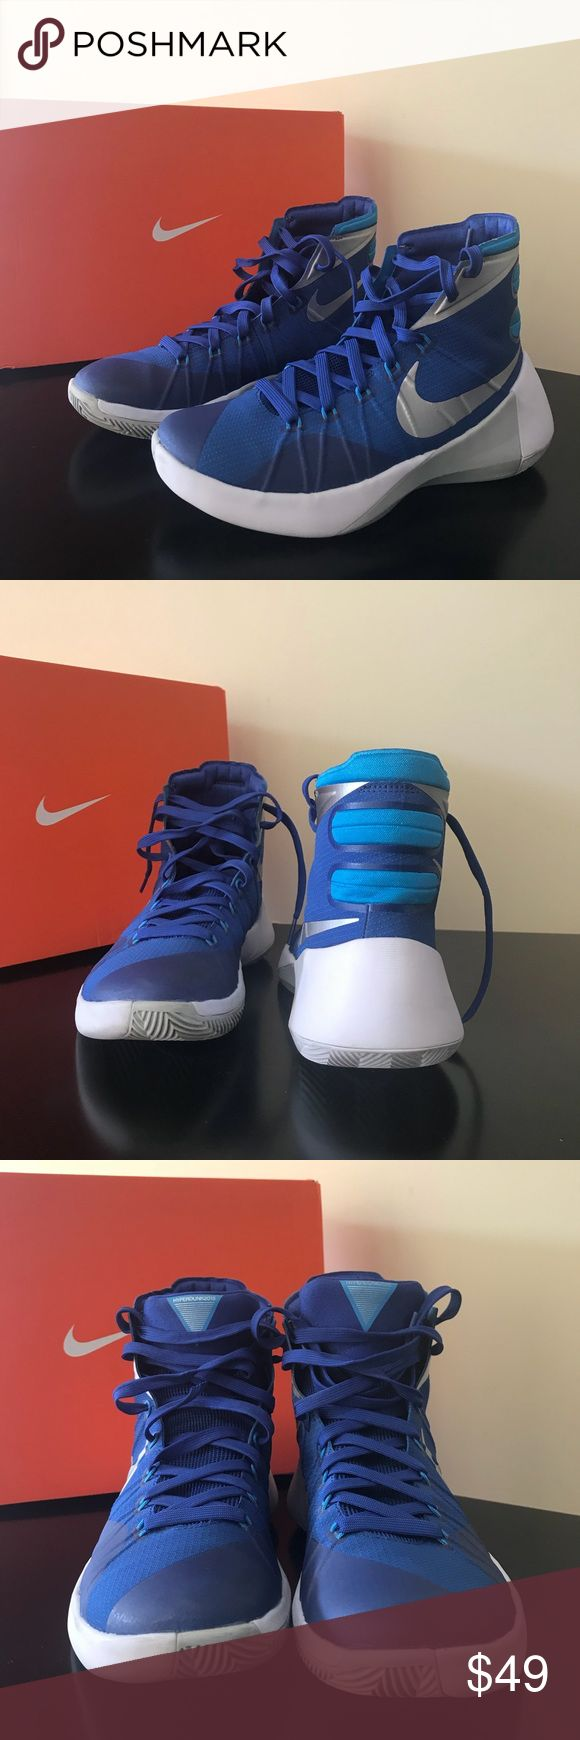 Nike Zoom hightops These are in excellent condition!   Dark blue and whit trim.   Worn mostly on indoor courts. Nike Shoes Athletic Shoes